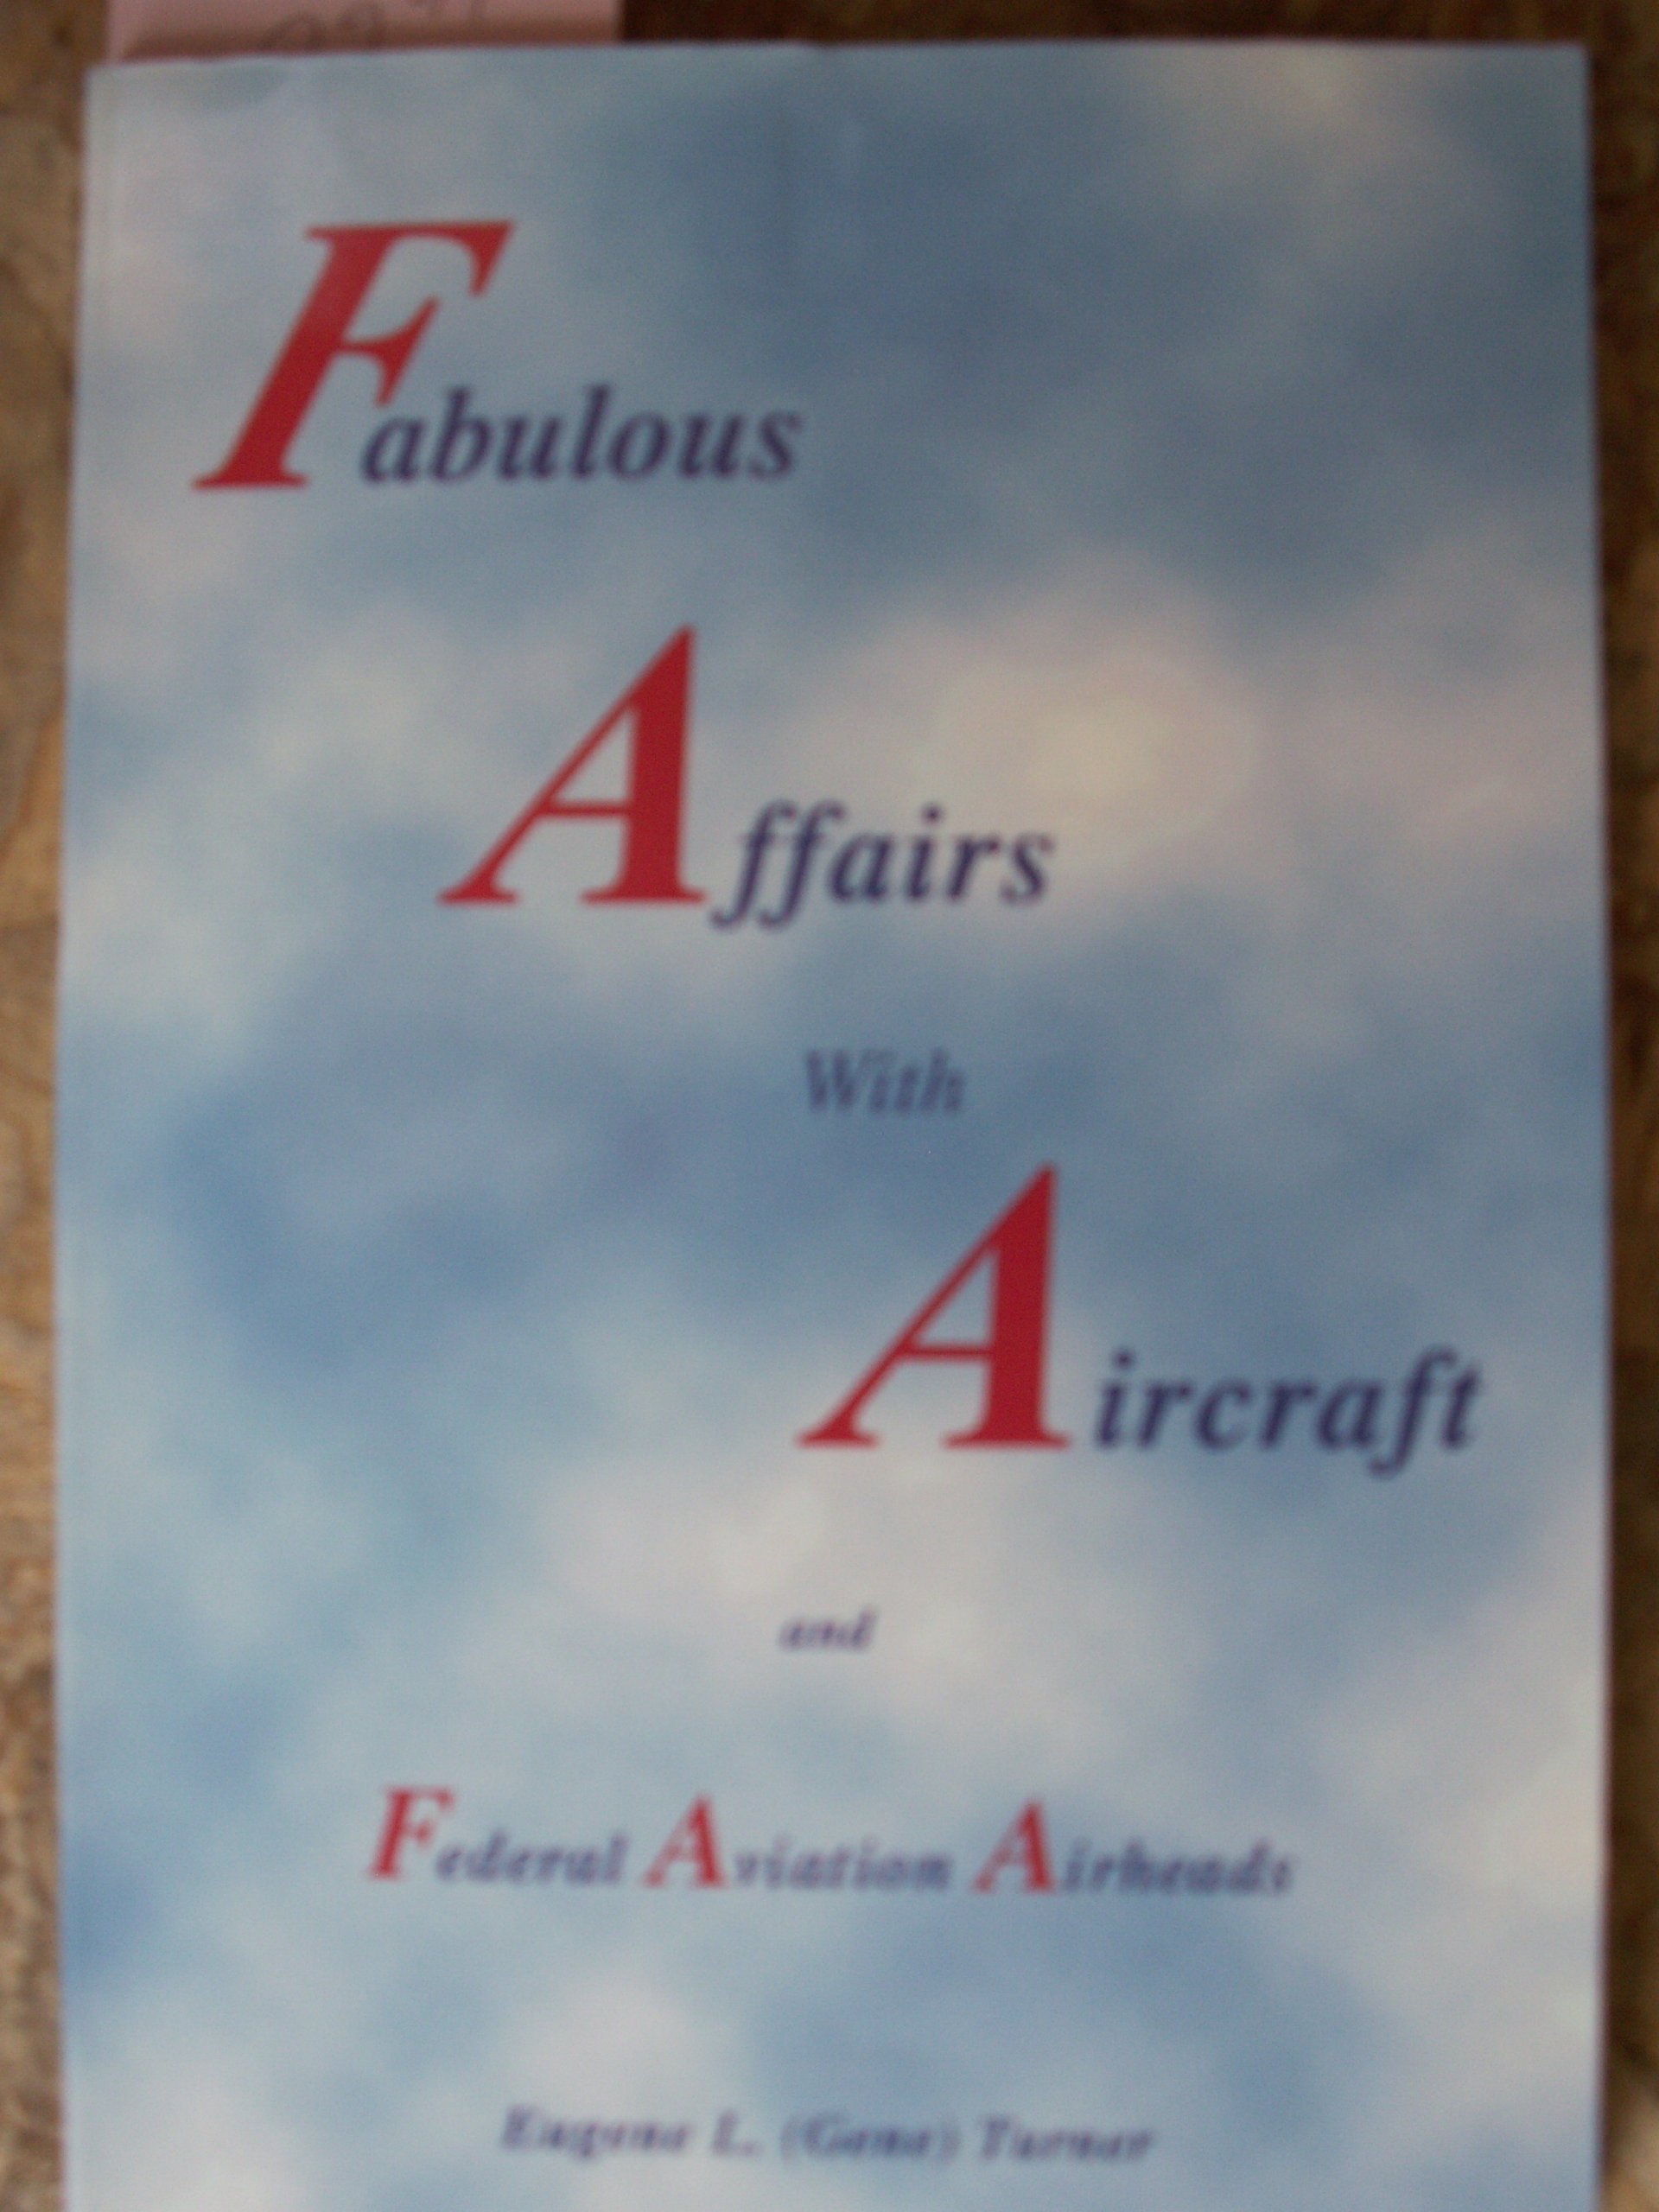 Read Online Fabulous Affairs with Aircraft and Federal Aviation Airheads pdf